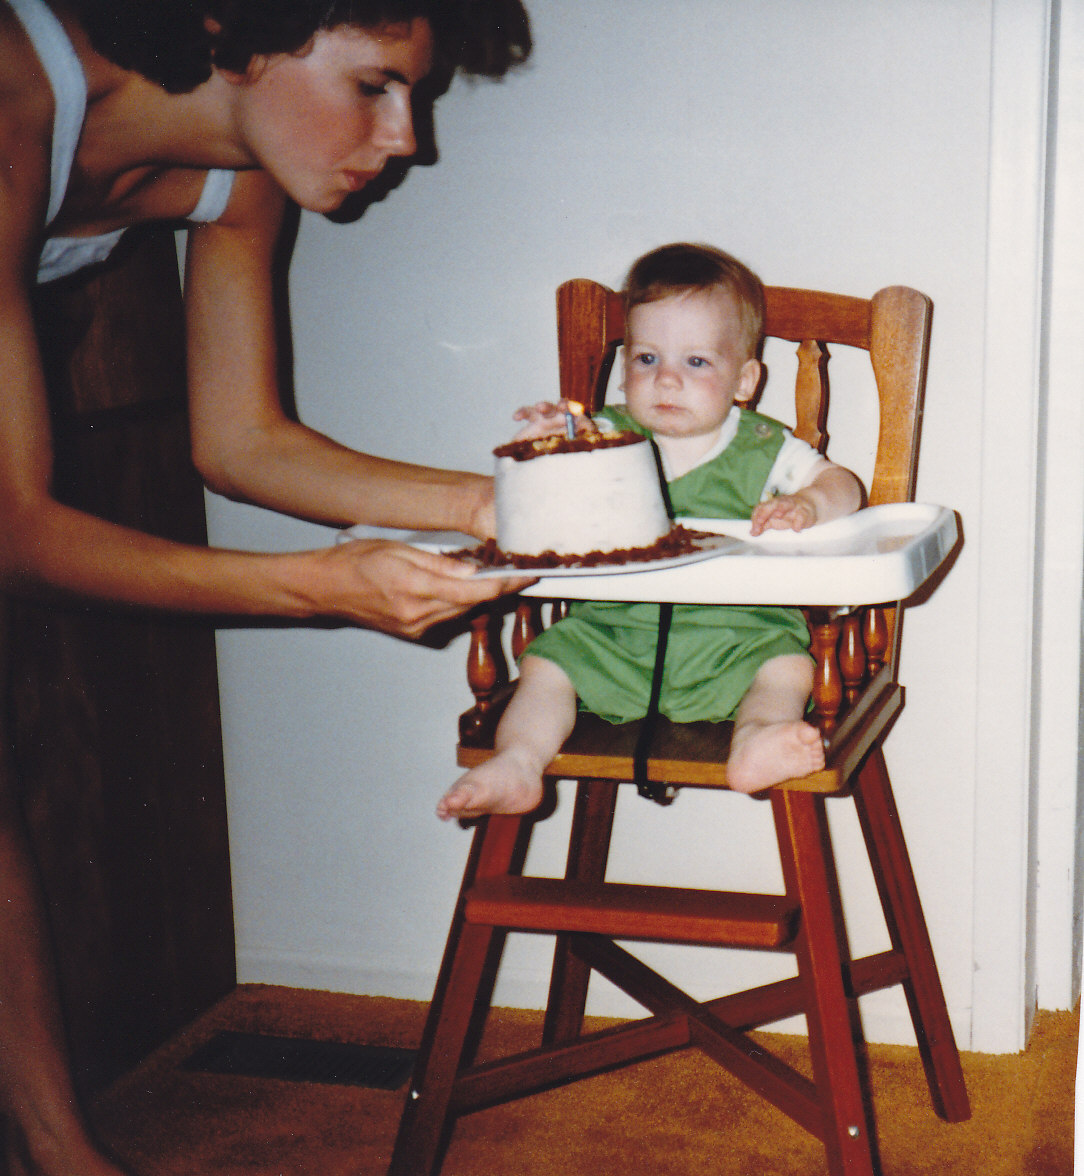 """Photo of JOSHUA CALEB BAKER– This Picture Is Of Me """"His Mother"""" And Joshua On His First Birthday. This Picture Has Shown Up Multiple Times On The Internet With Me Cropped Out Of It. I Feel It Is Only Honouring To Joshua To Set The Record Straight. I Will Not Go Into Why I Have Been Removed From The Photo But Will Say That Joshua Was My Only Child And Had No Other Siblings. There Have Been Many Twisted Stories On The Internet And In Paperwork Regarding Nonexistent Relatives. Joshua Lost All His Aunts, Uncles And Grandfather Previous To His Death Leaving Only Myself """"His Mother"""" And His Grandmother. I Feel It Is Only Right That This Photo Is Put Up In It's Original Form. The Person Or People Who Doctored This Photo Completely Disrespected Joshua And Myself His Mother. I Am Very Proud Of This Precious Photo Of My Son And I. Love, Mom"""